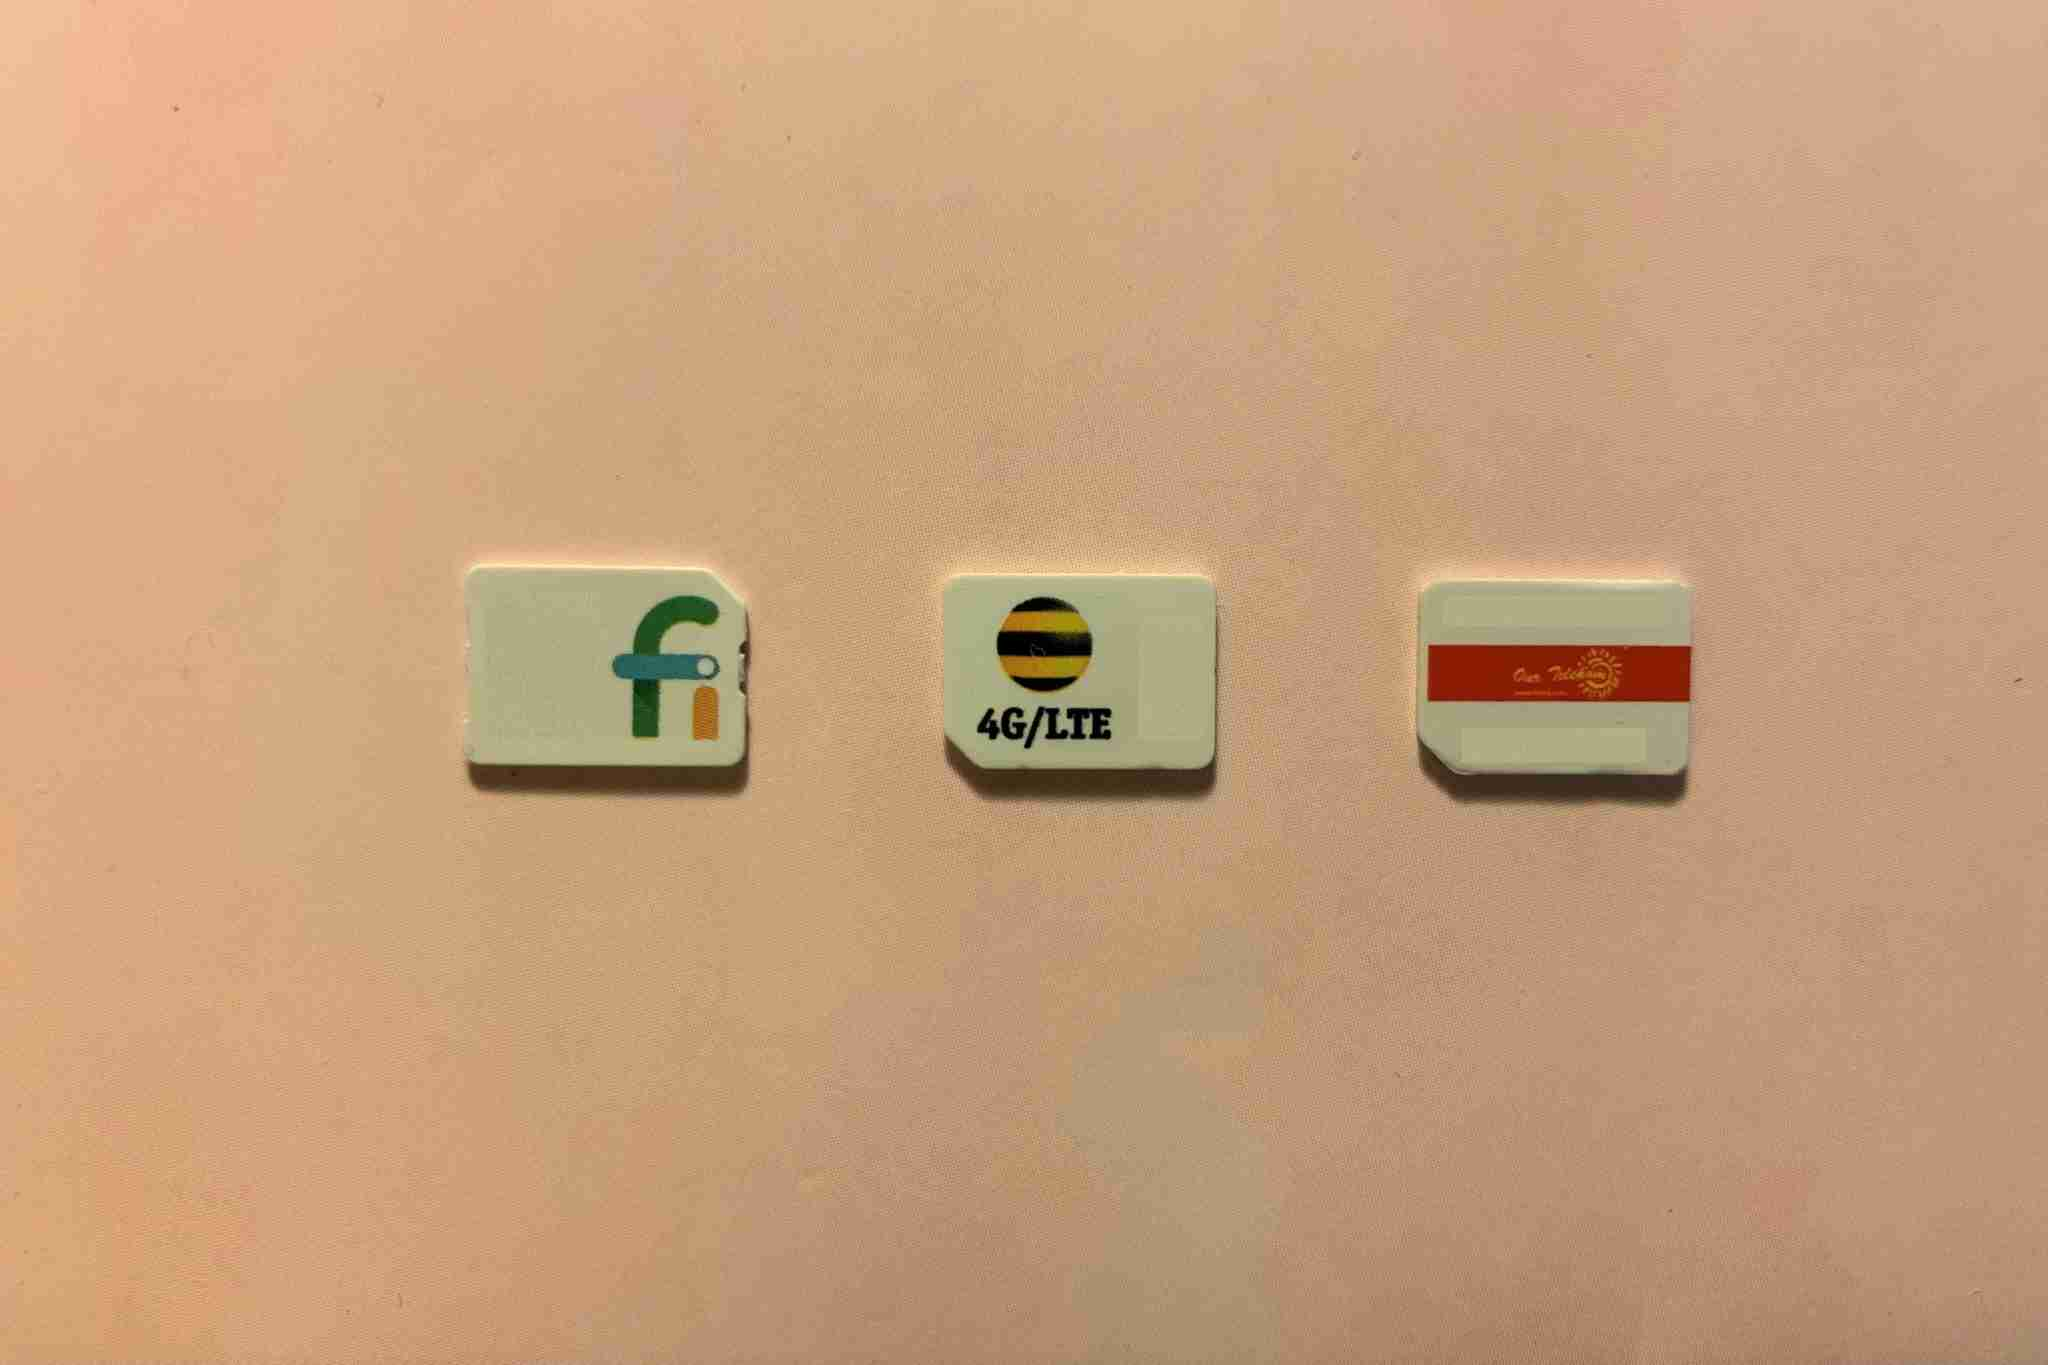 My Google Fi SIM card next to SIM cards from Kazakhstan and Solomon Islands. I